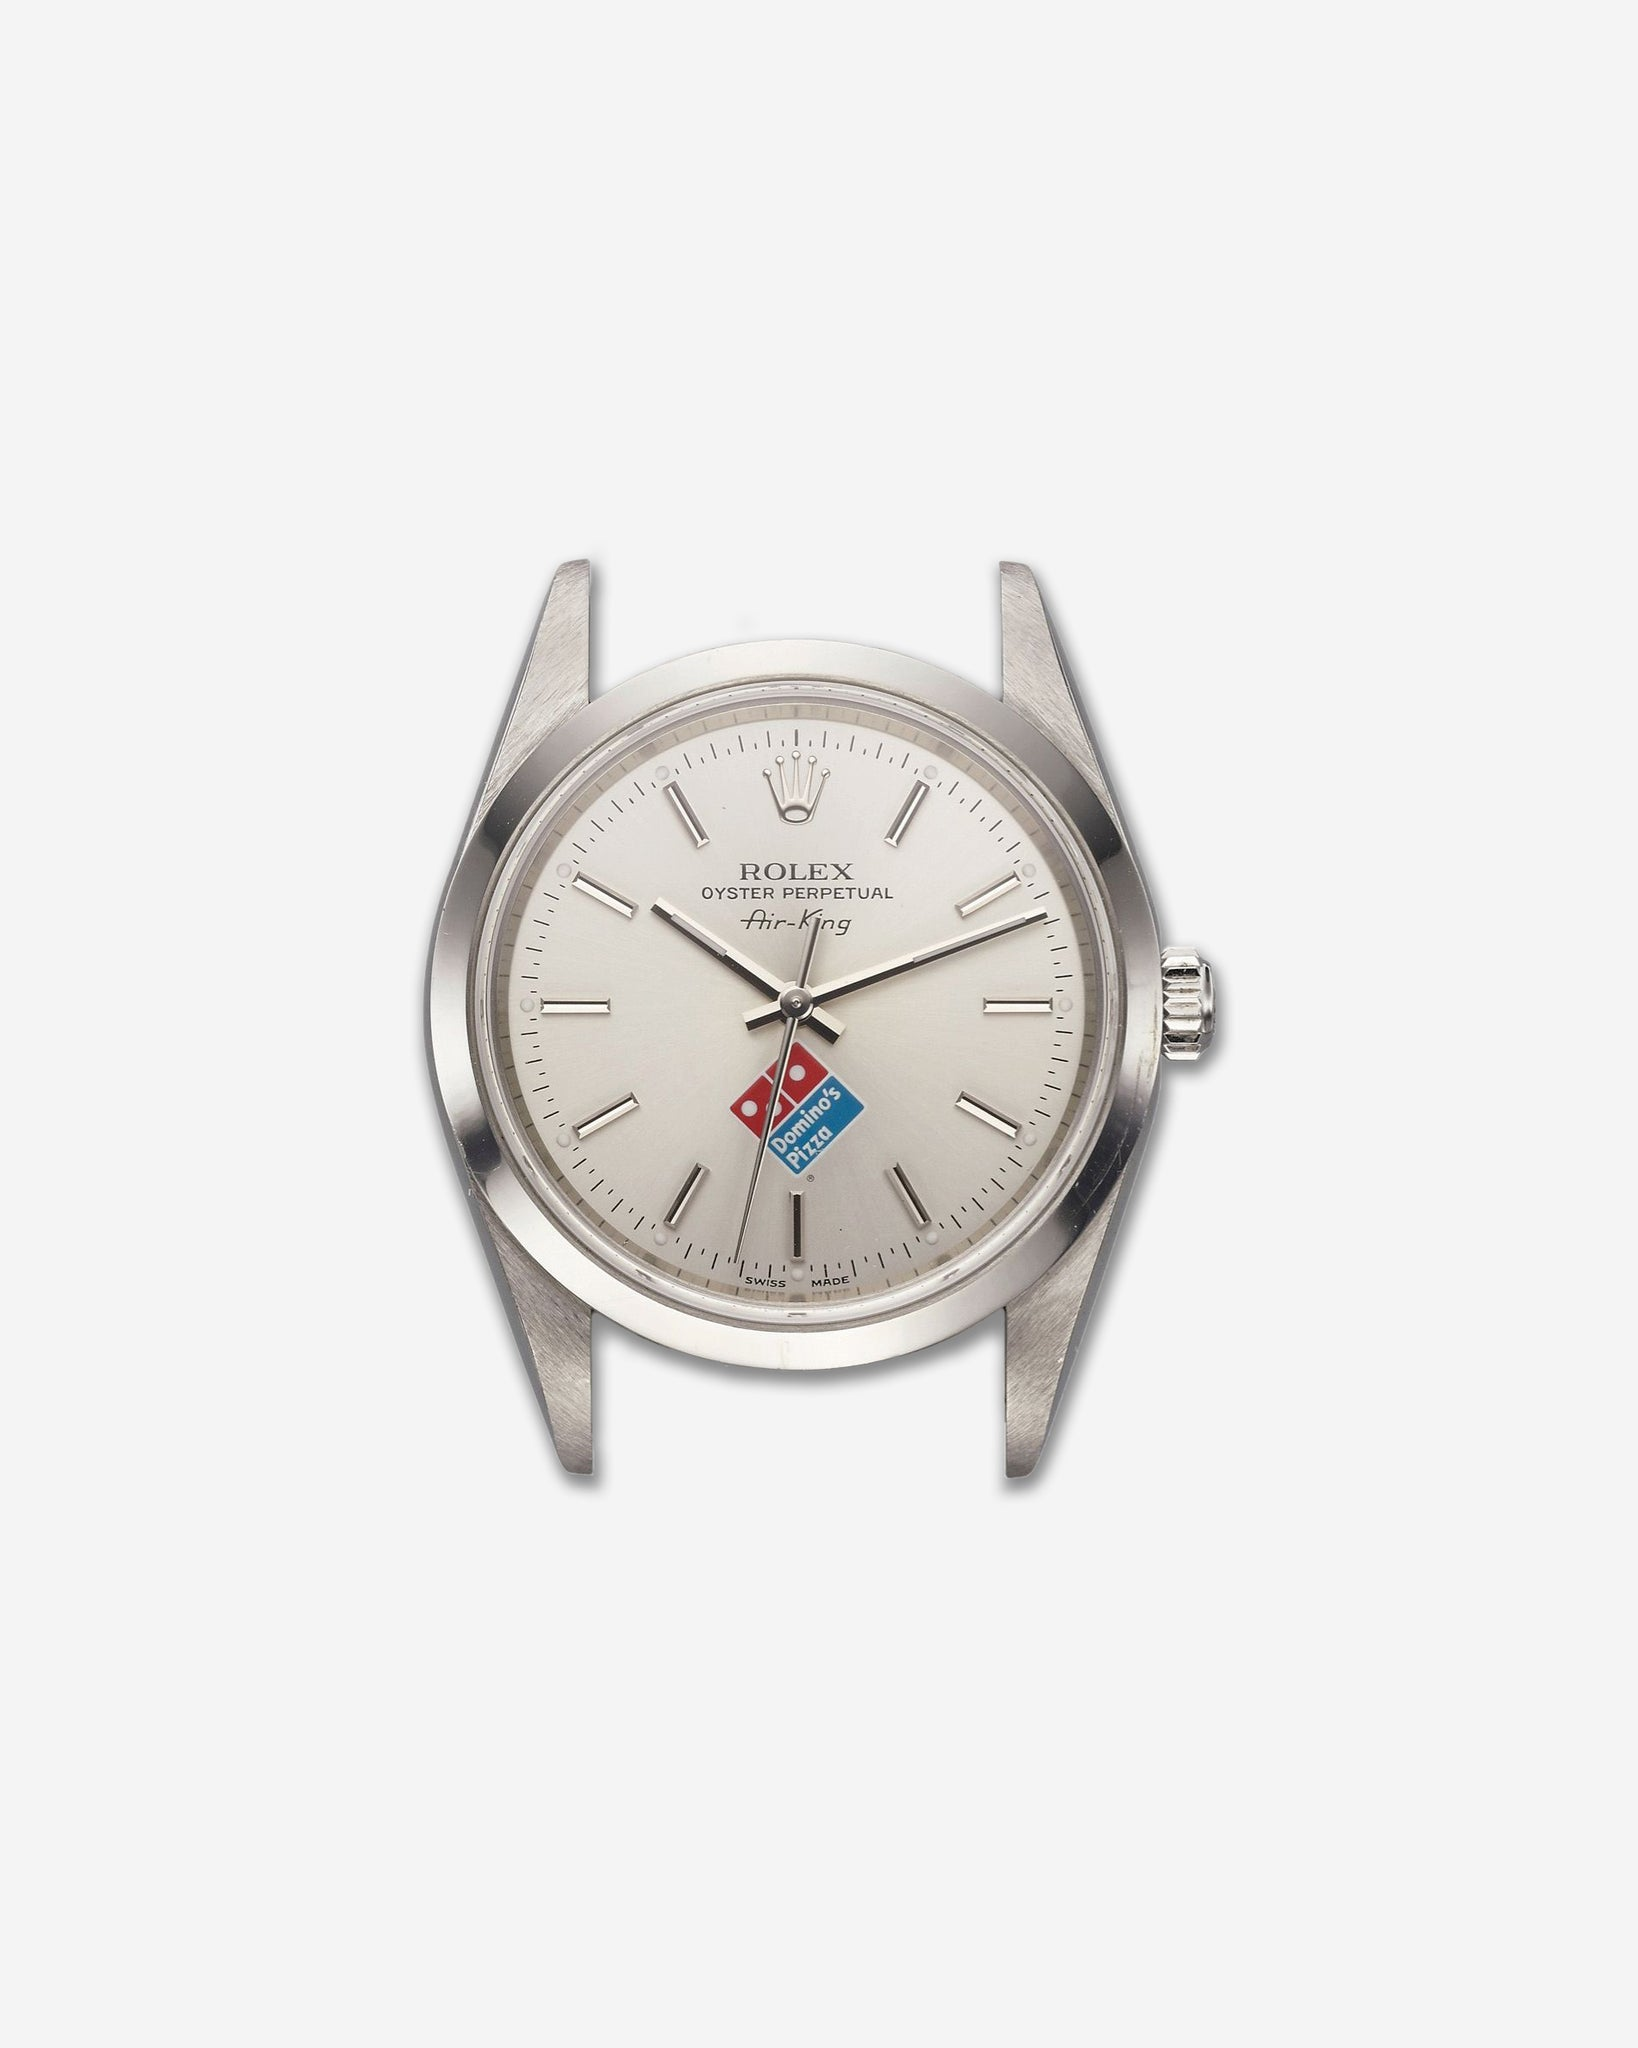 Rolex Air-King signed with Domino's logo that sold at Antiquorum for USD 3,750